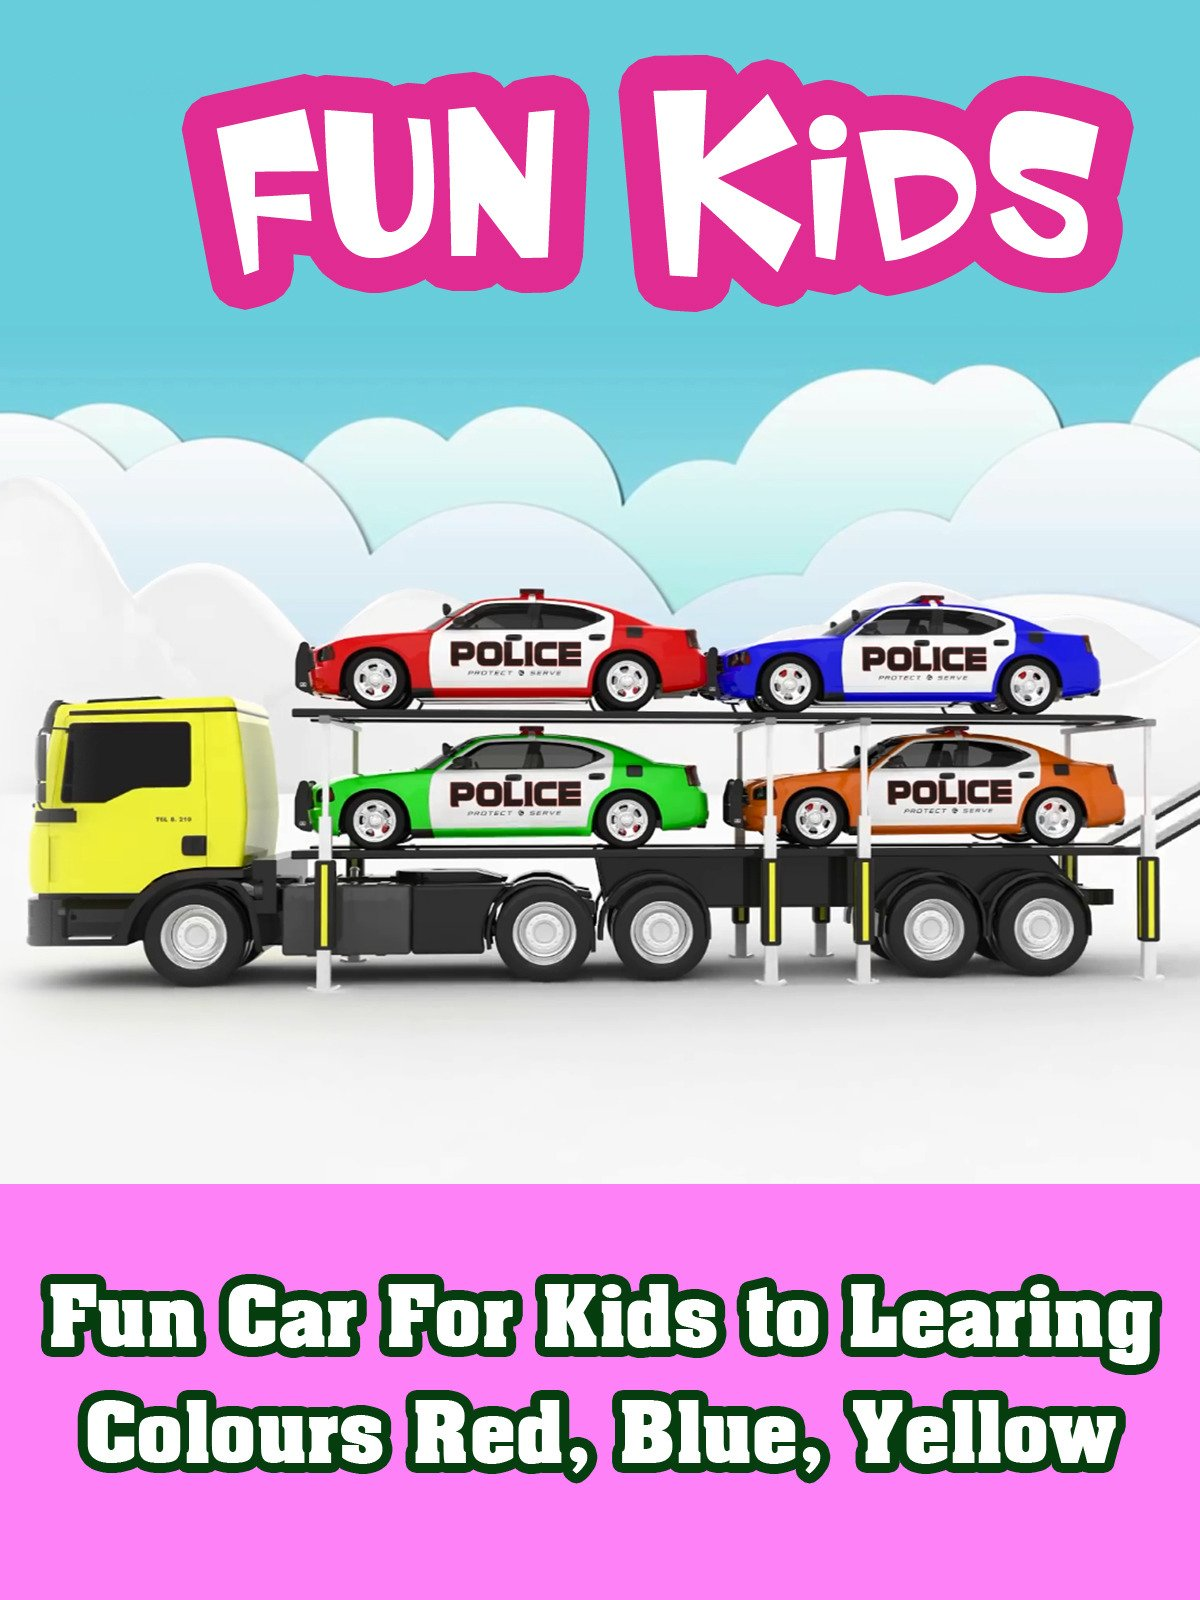 Fun Car For Kids to Learing Colours Red, Blue, Yellow